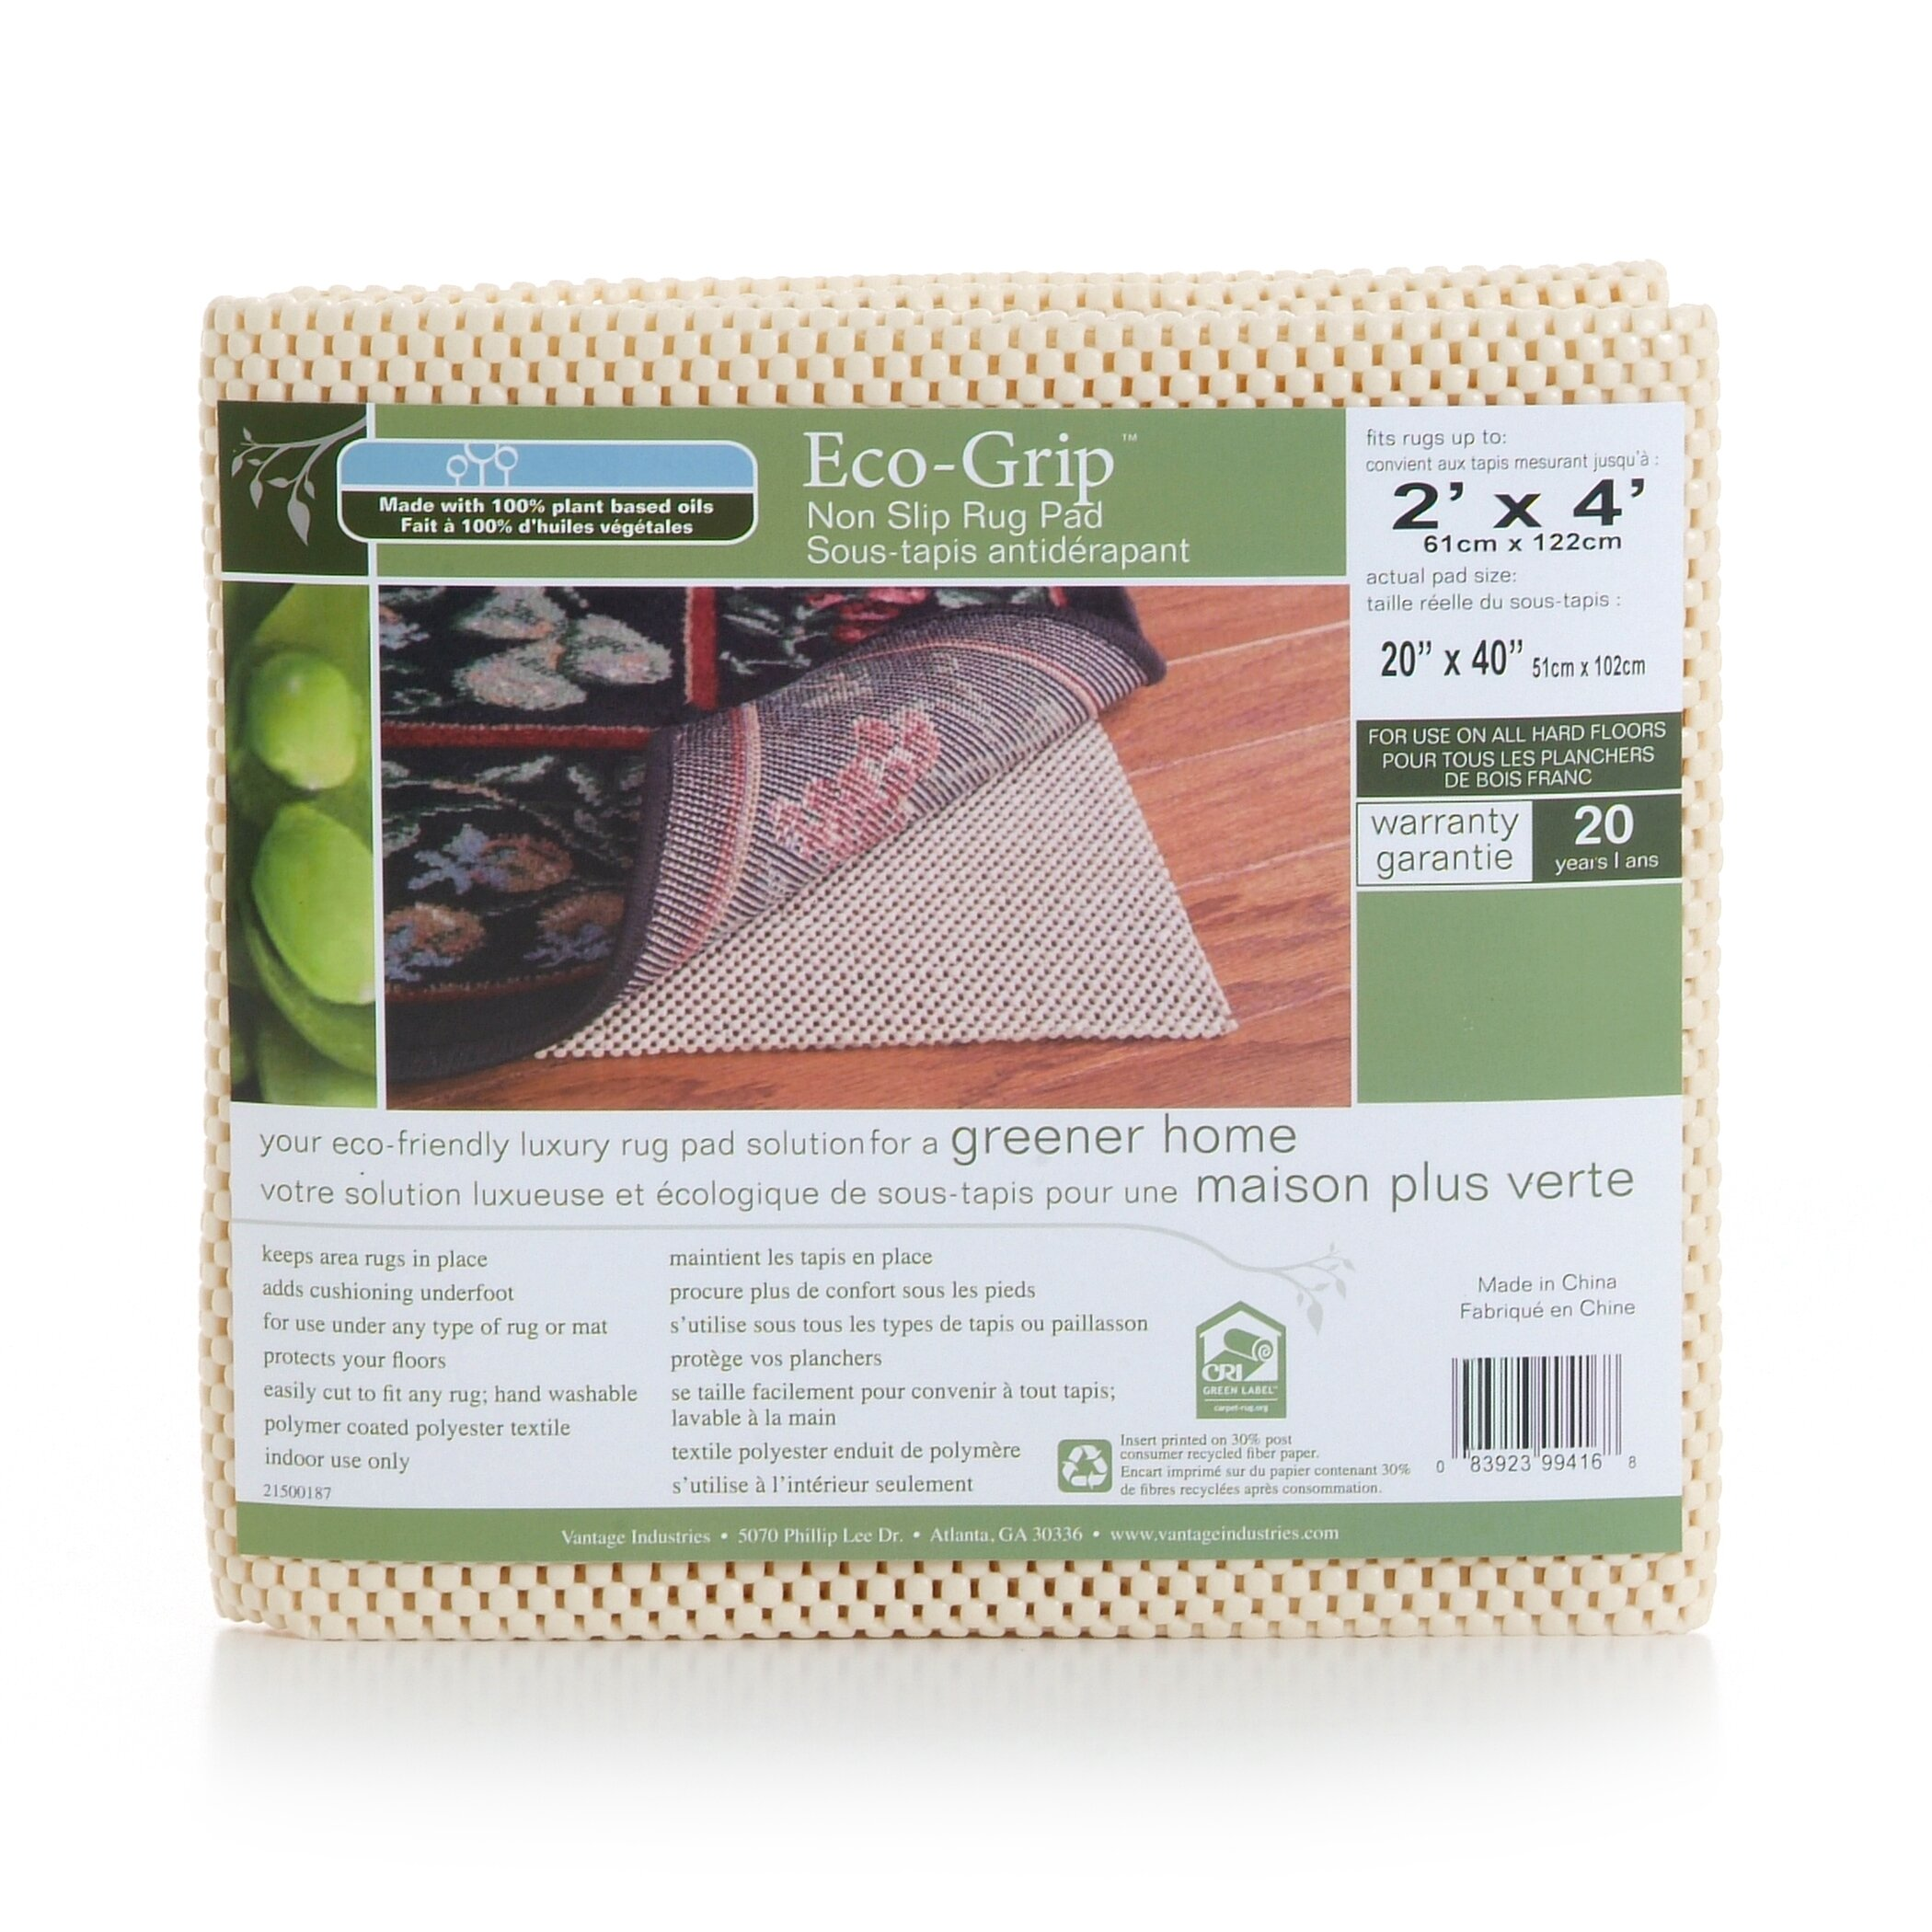 rug pads c cushioned kitchen floor mats Eco Grip Non Slip Rug Pad